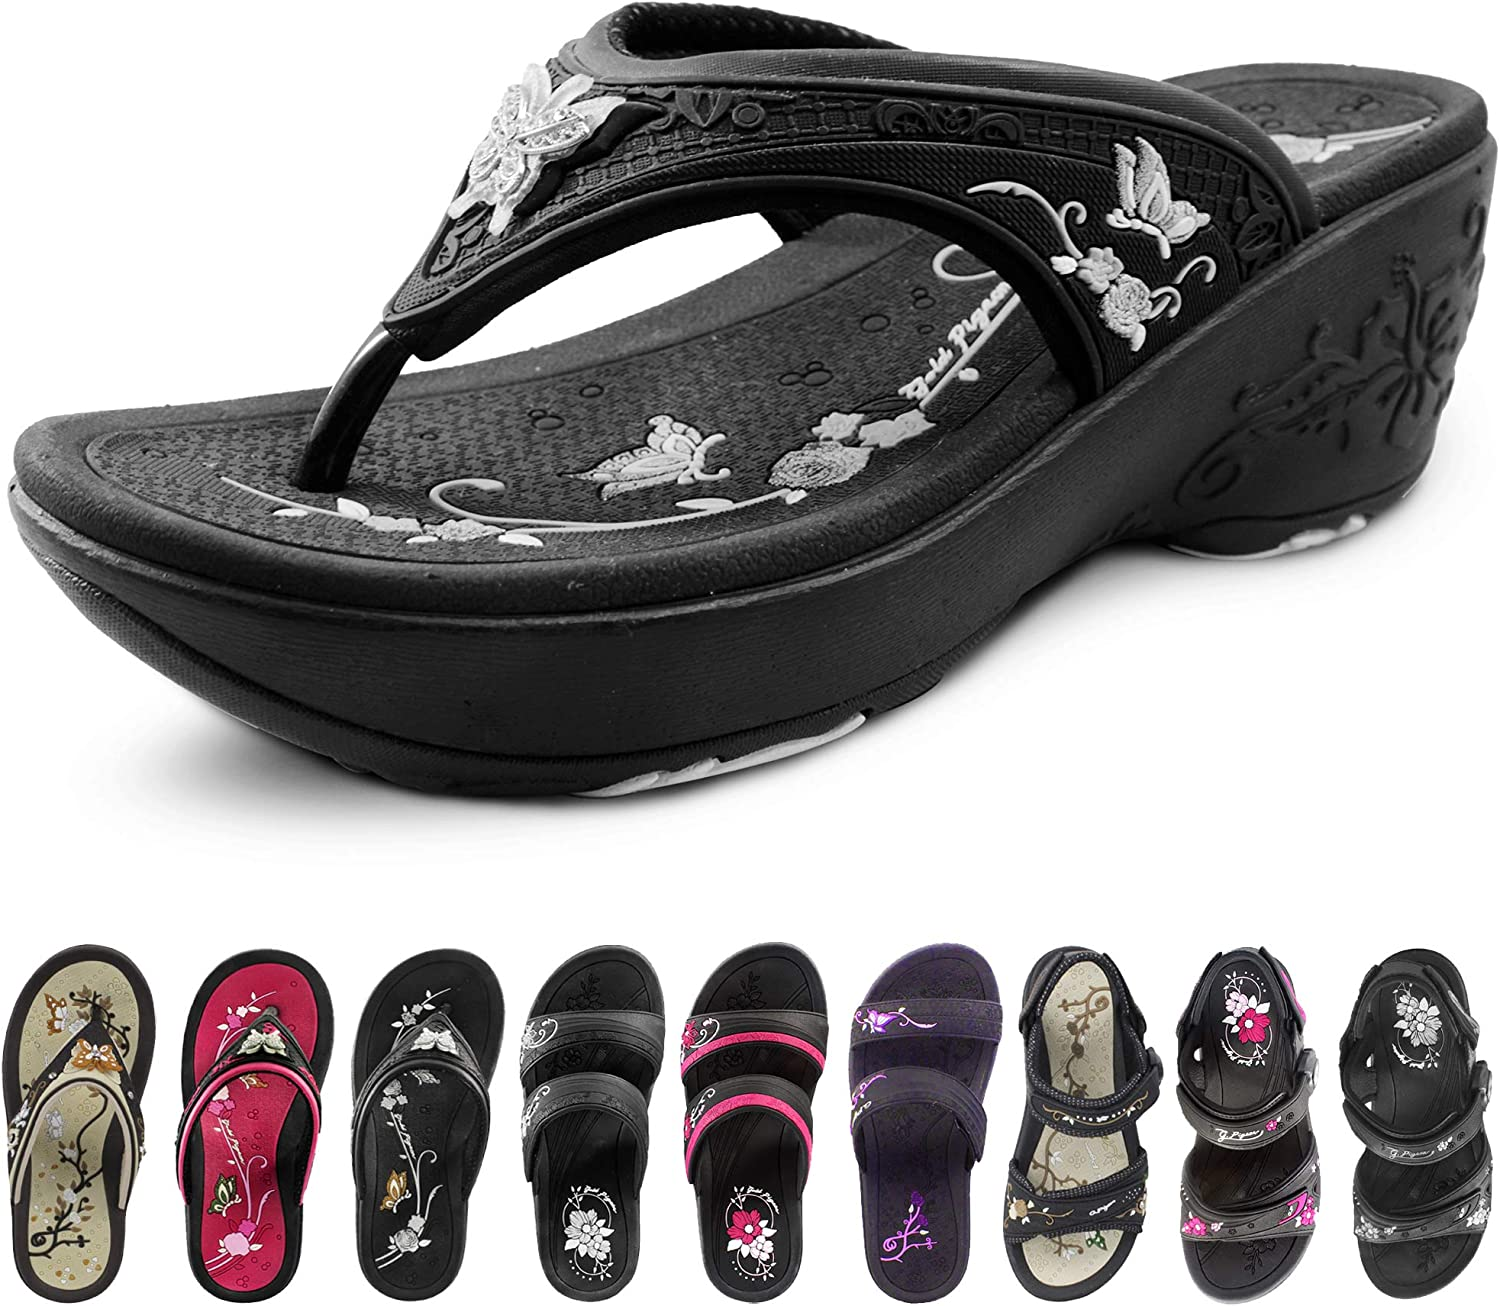 Gold Pigeon New product type Shoes Wedge Sandals Max 89% OFF for Flops Flip Comfort Women: Sl